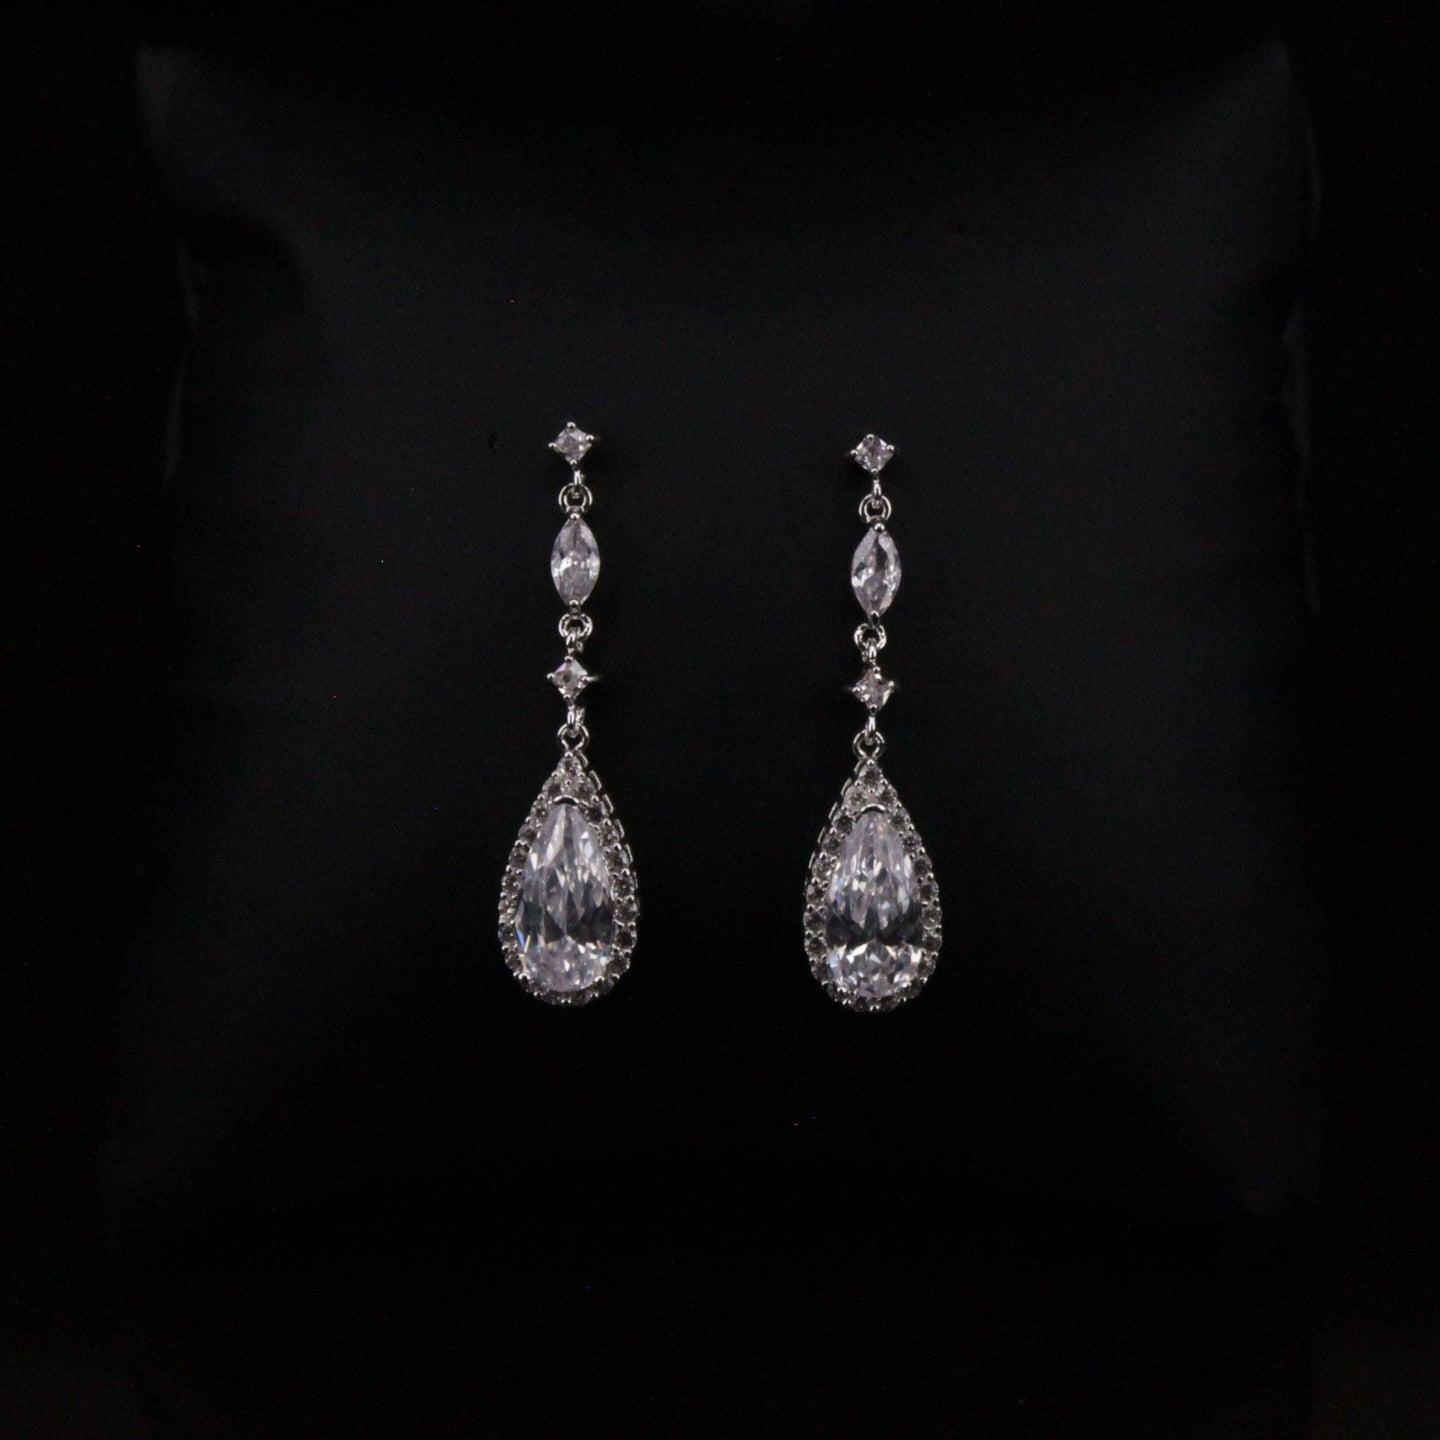 Aurora - Earrings - Trestina